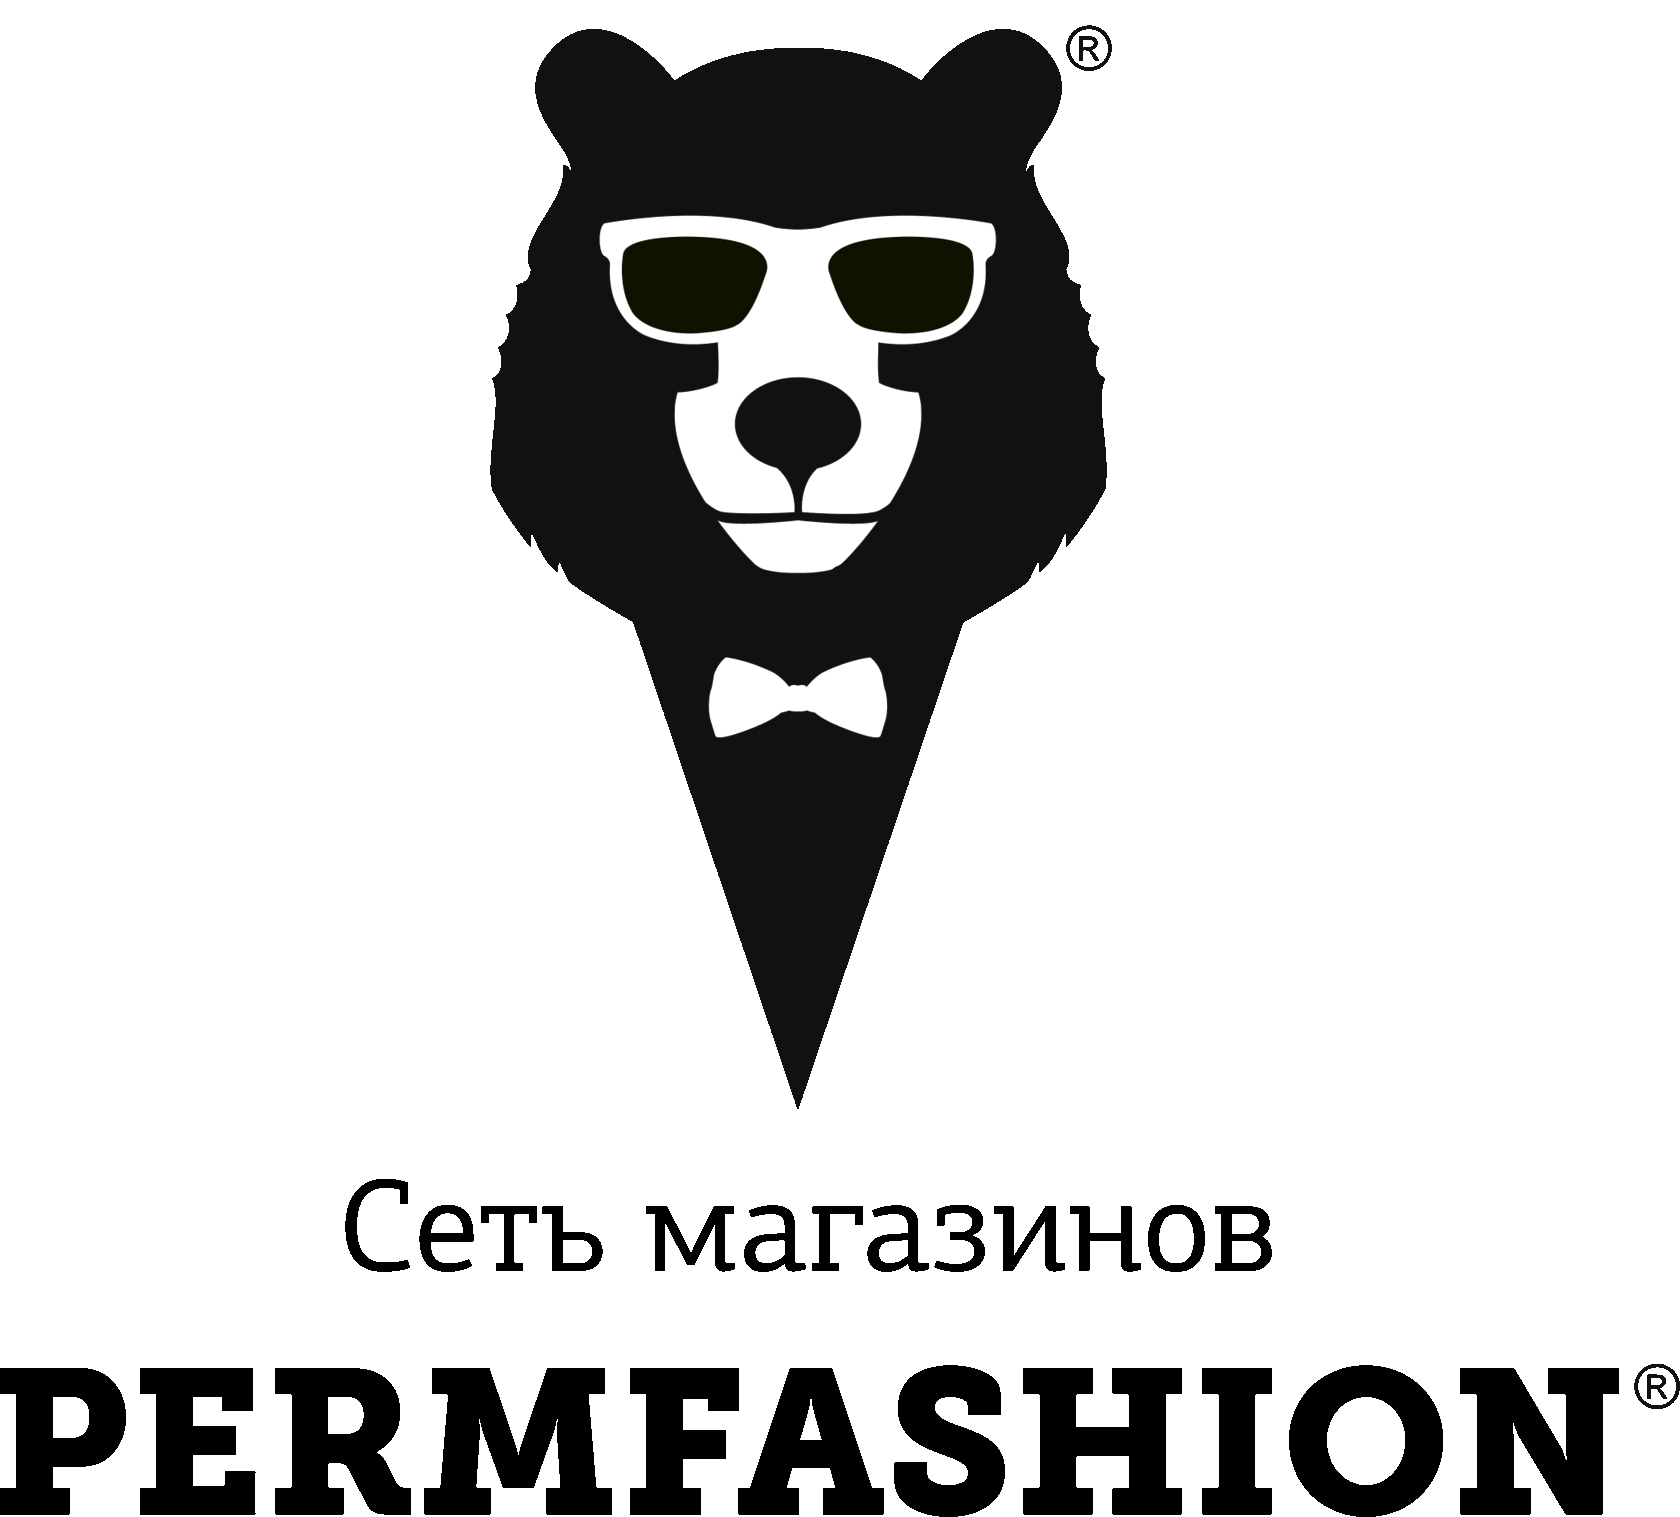 Permfashion